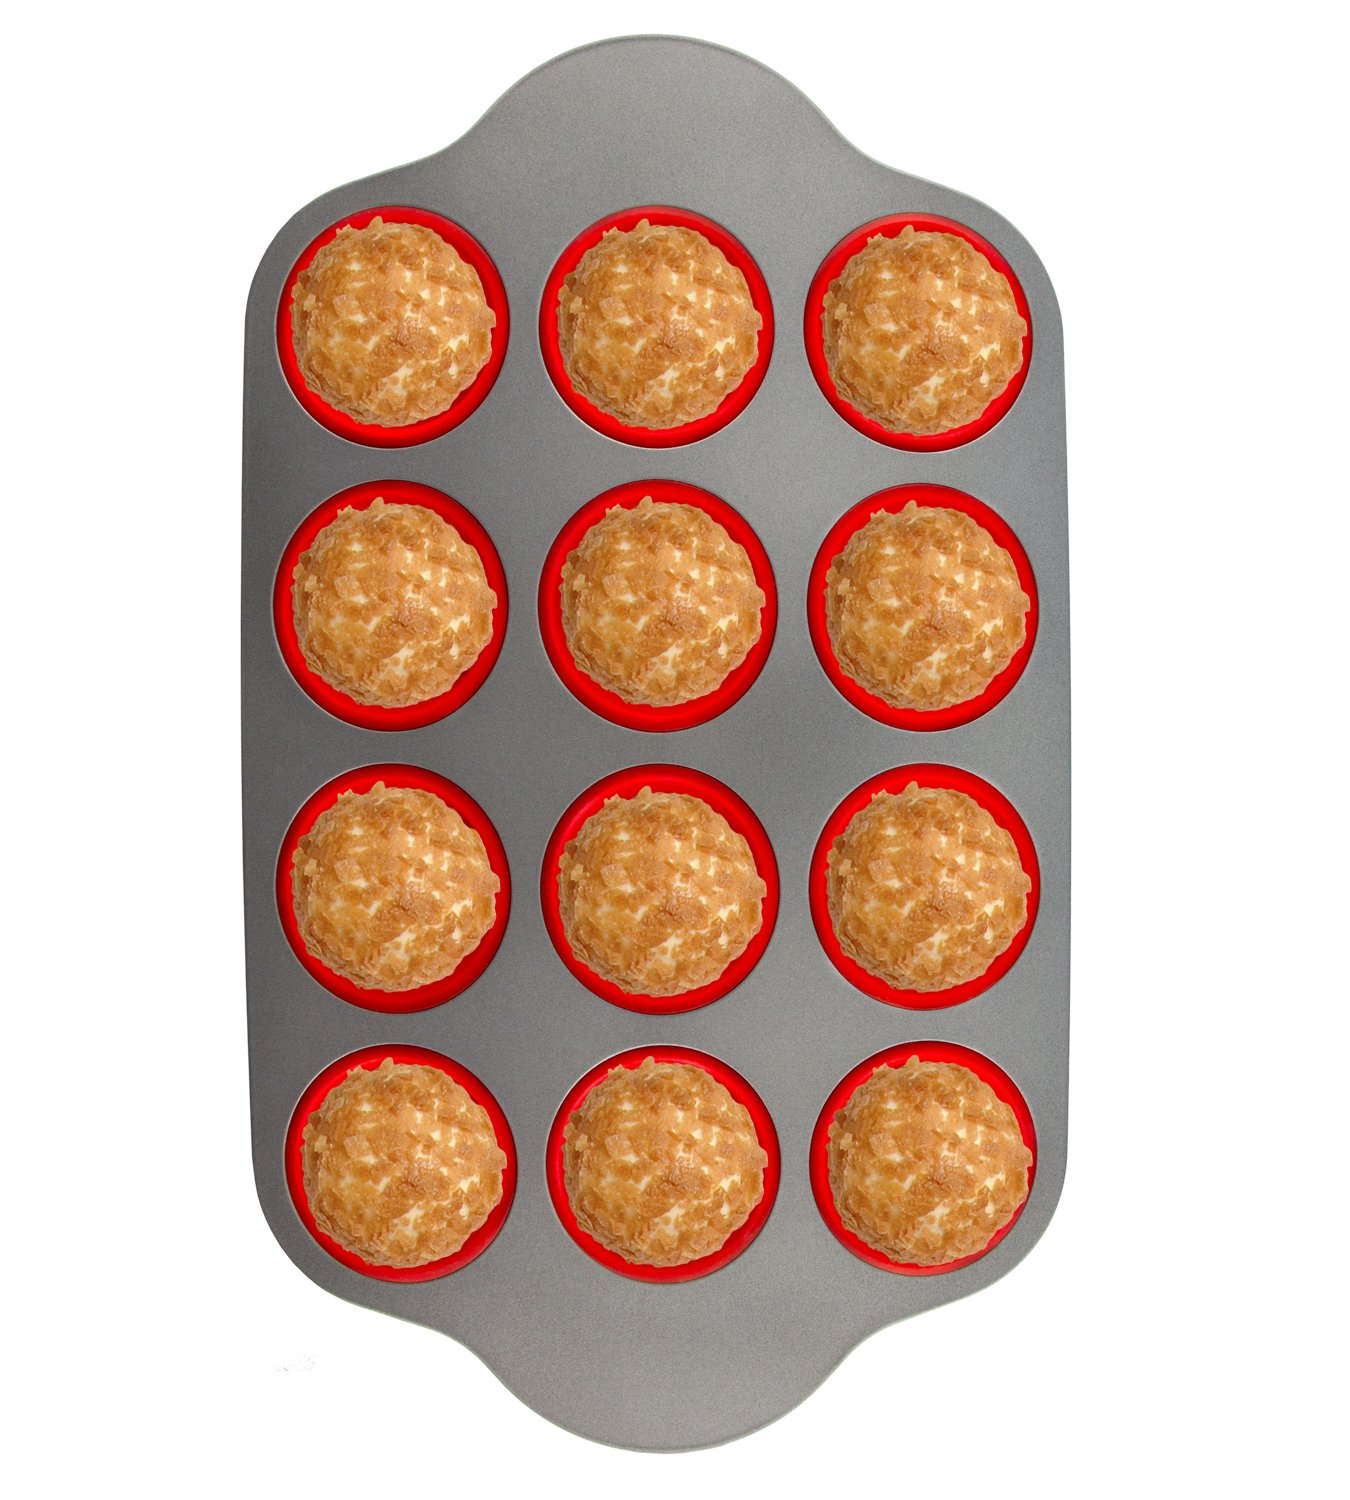 Silicone Muffin Pan With Steel Frame, 12 Cups Full Size | Professional Non-Stick Baking Molds by Boxiki Kitchen | FDA Approved BPA-Free Bakeware | Silicone 12 Cup Muffin Mold by Boxiki Kitchen